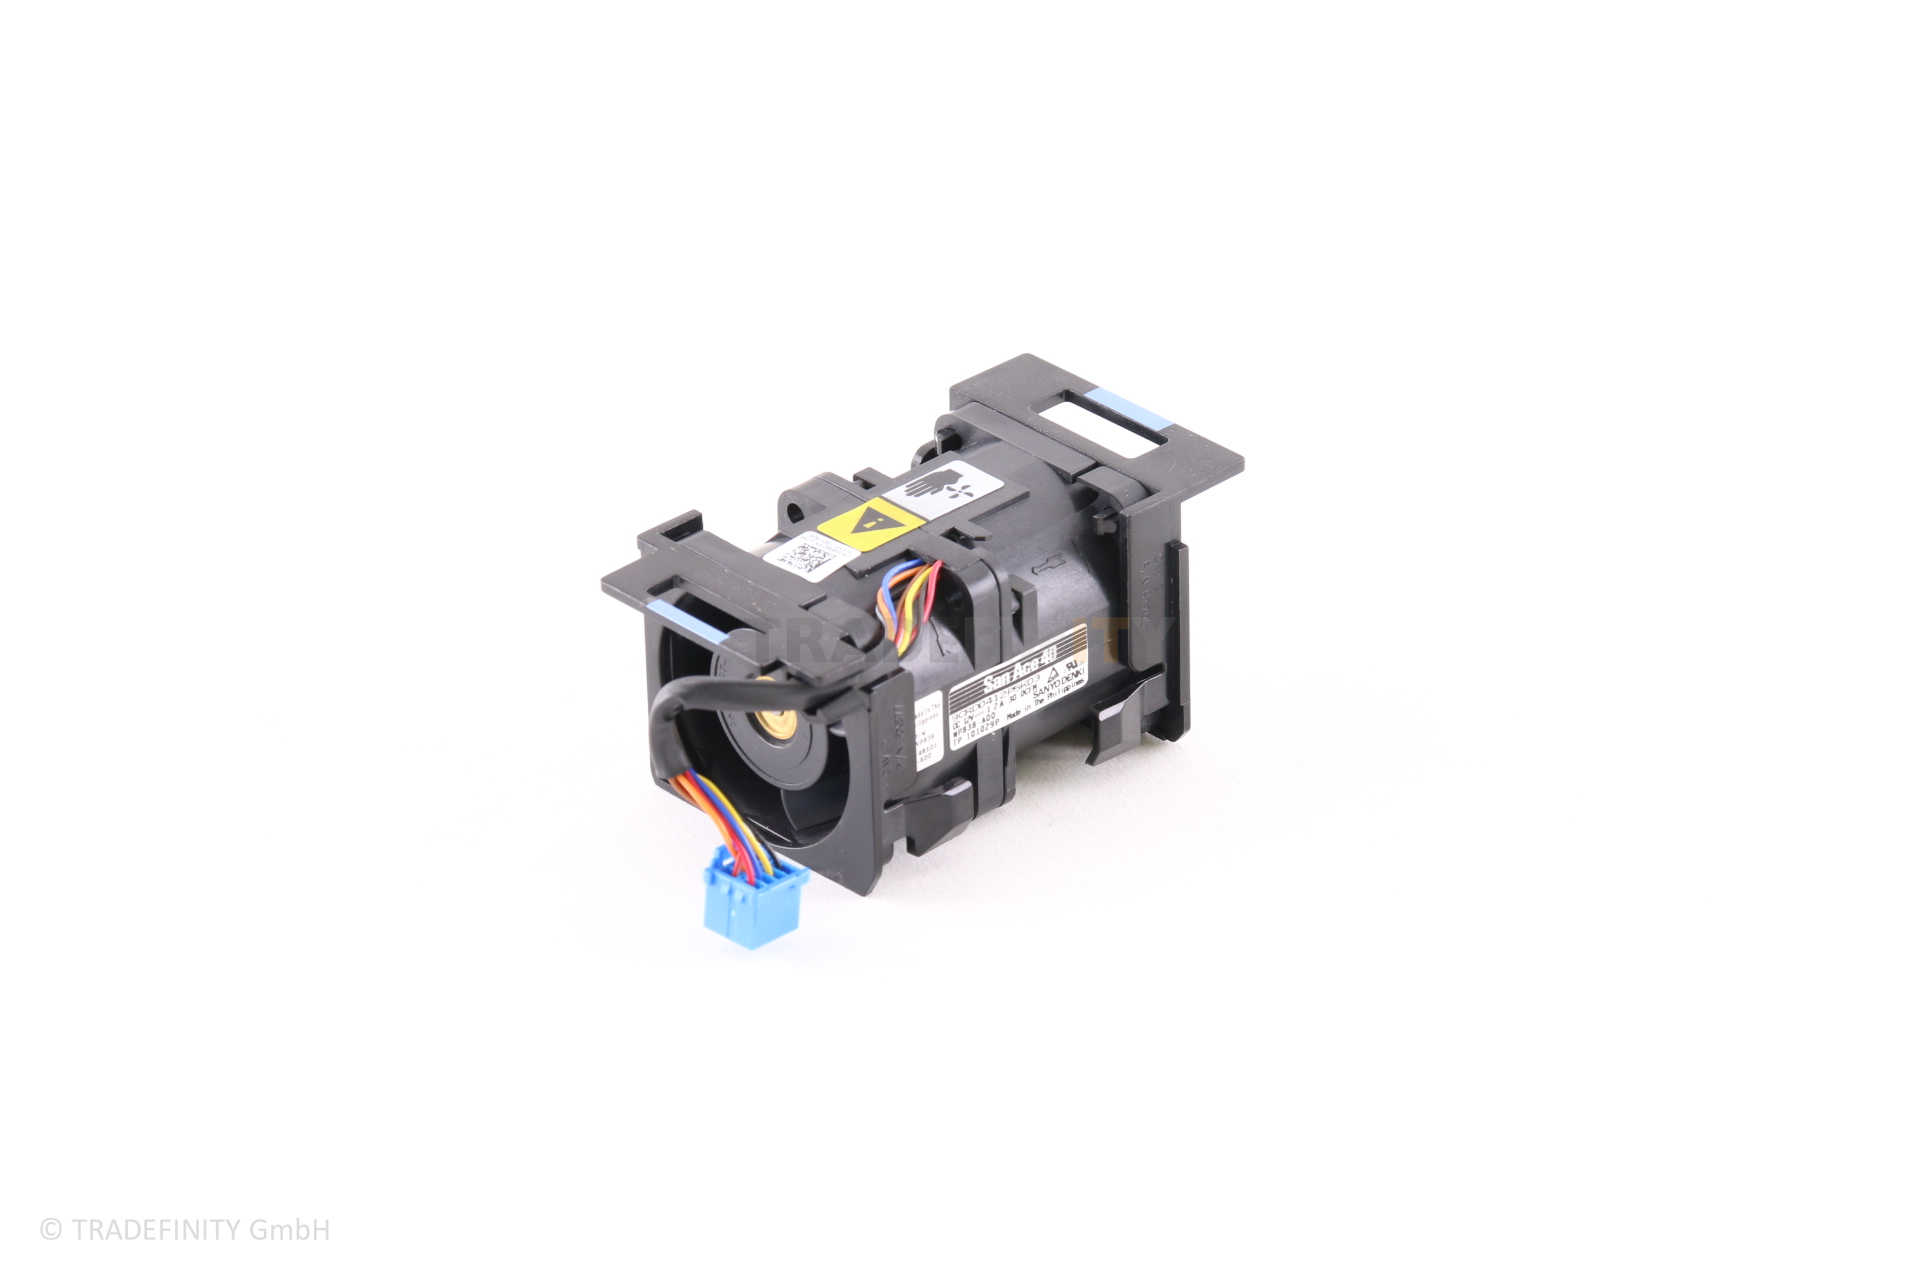 PowerEdge R610 Cooling Assembly